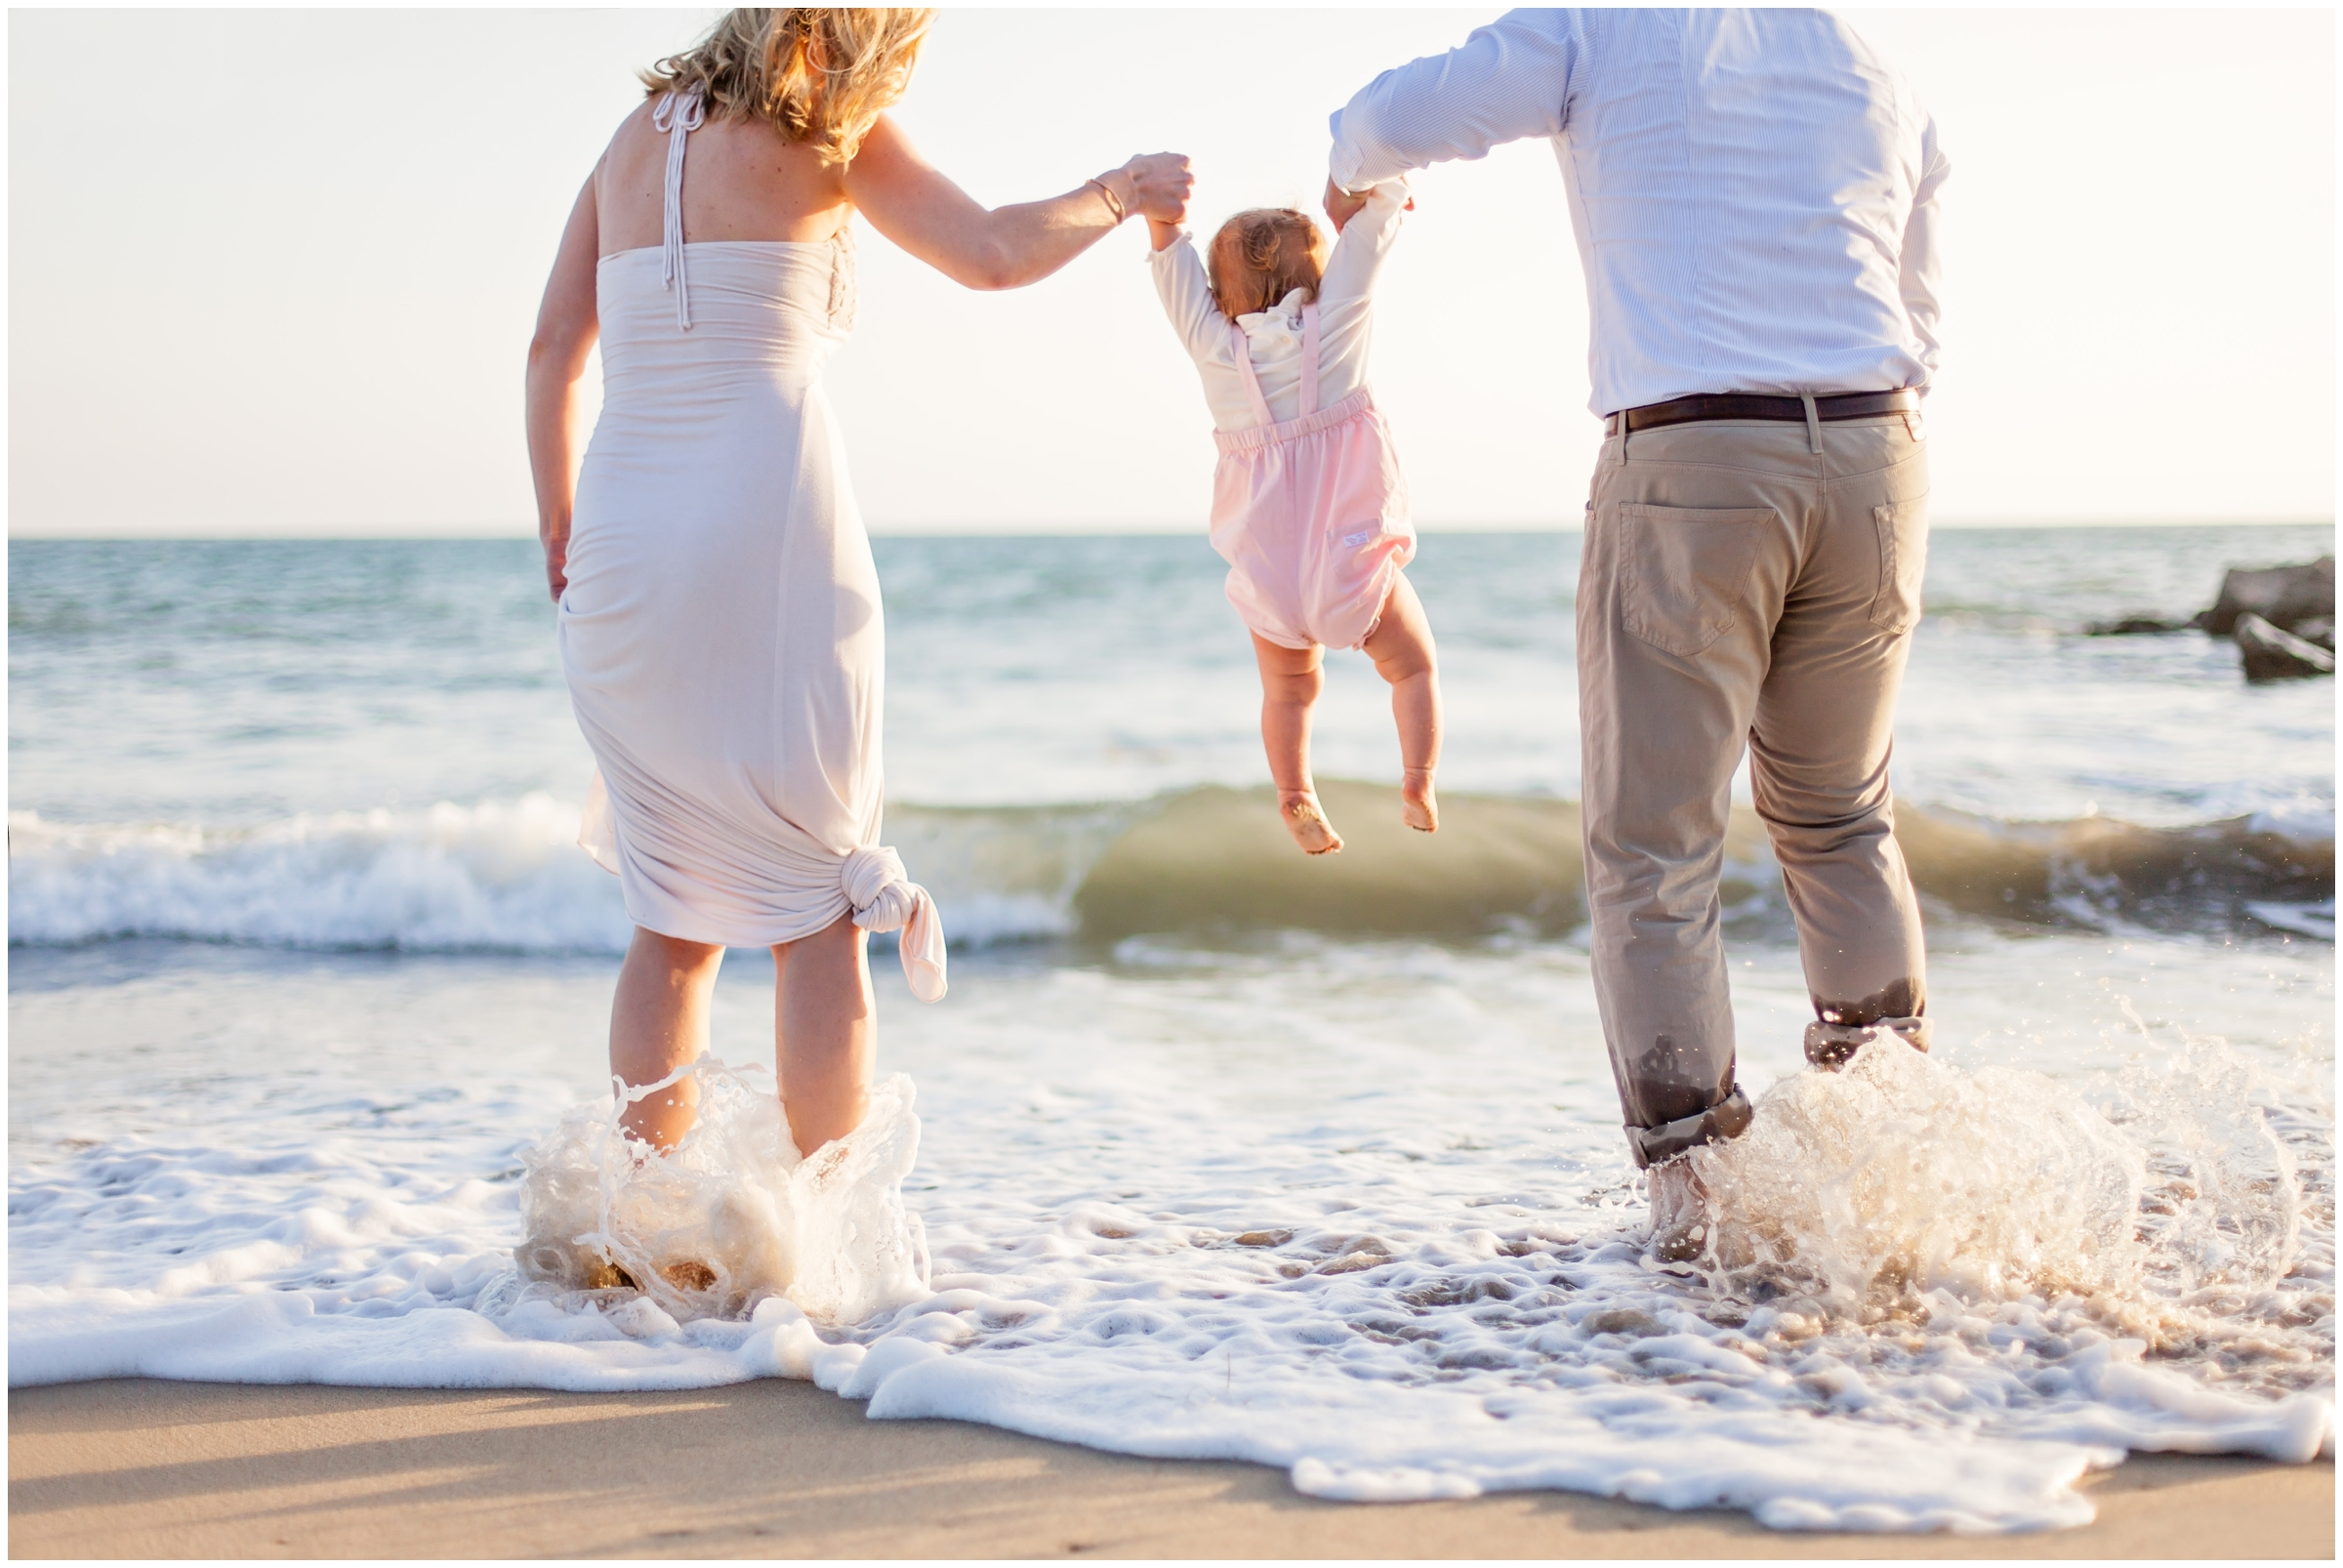 Family Portraits at the Beach by Just Maggie Photography - Los Angeles Baby and Family Photographer